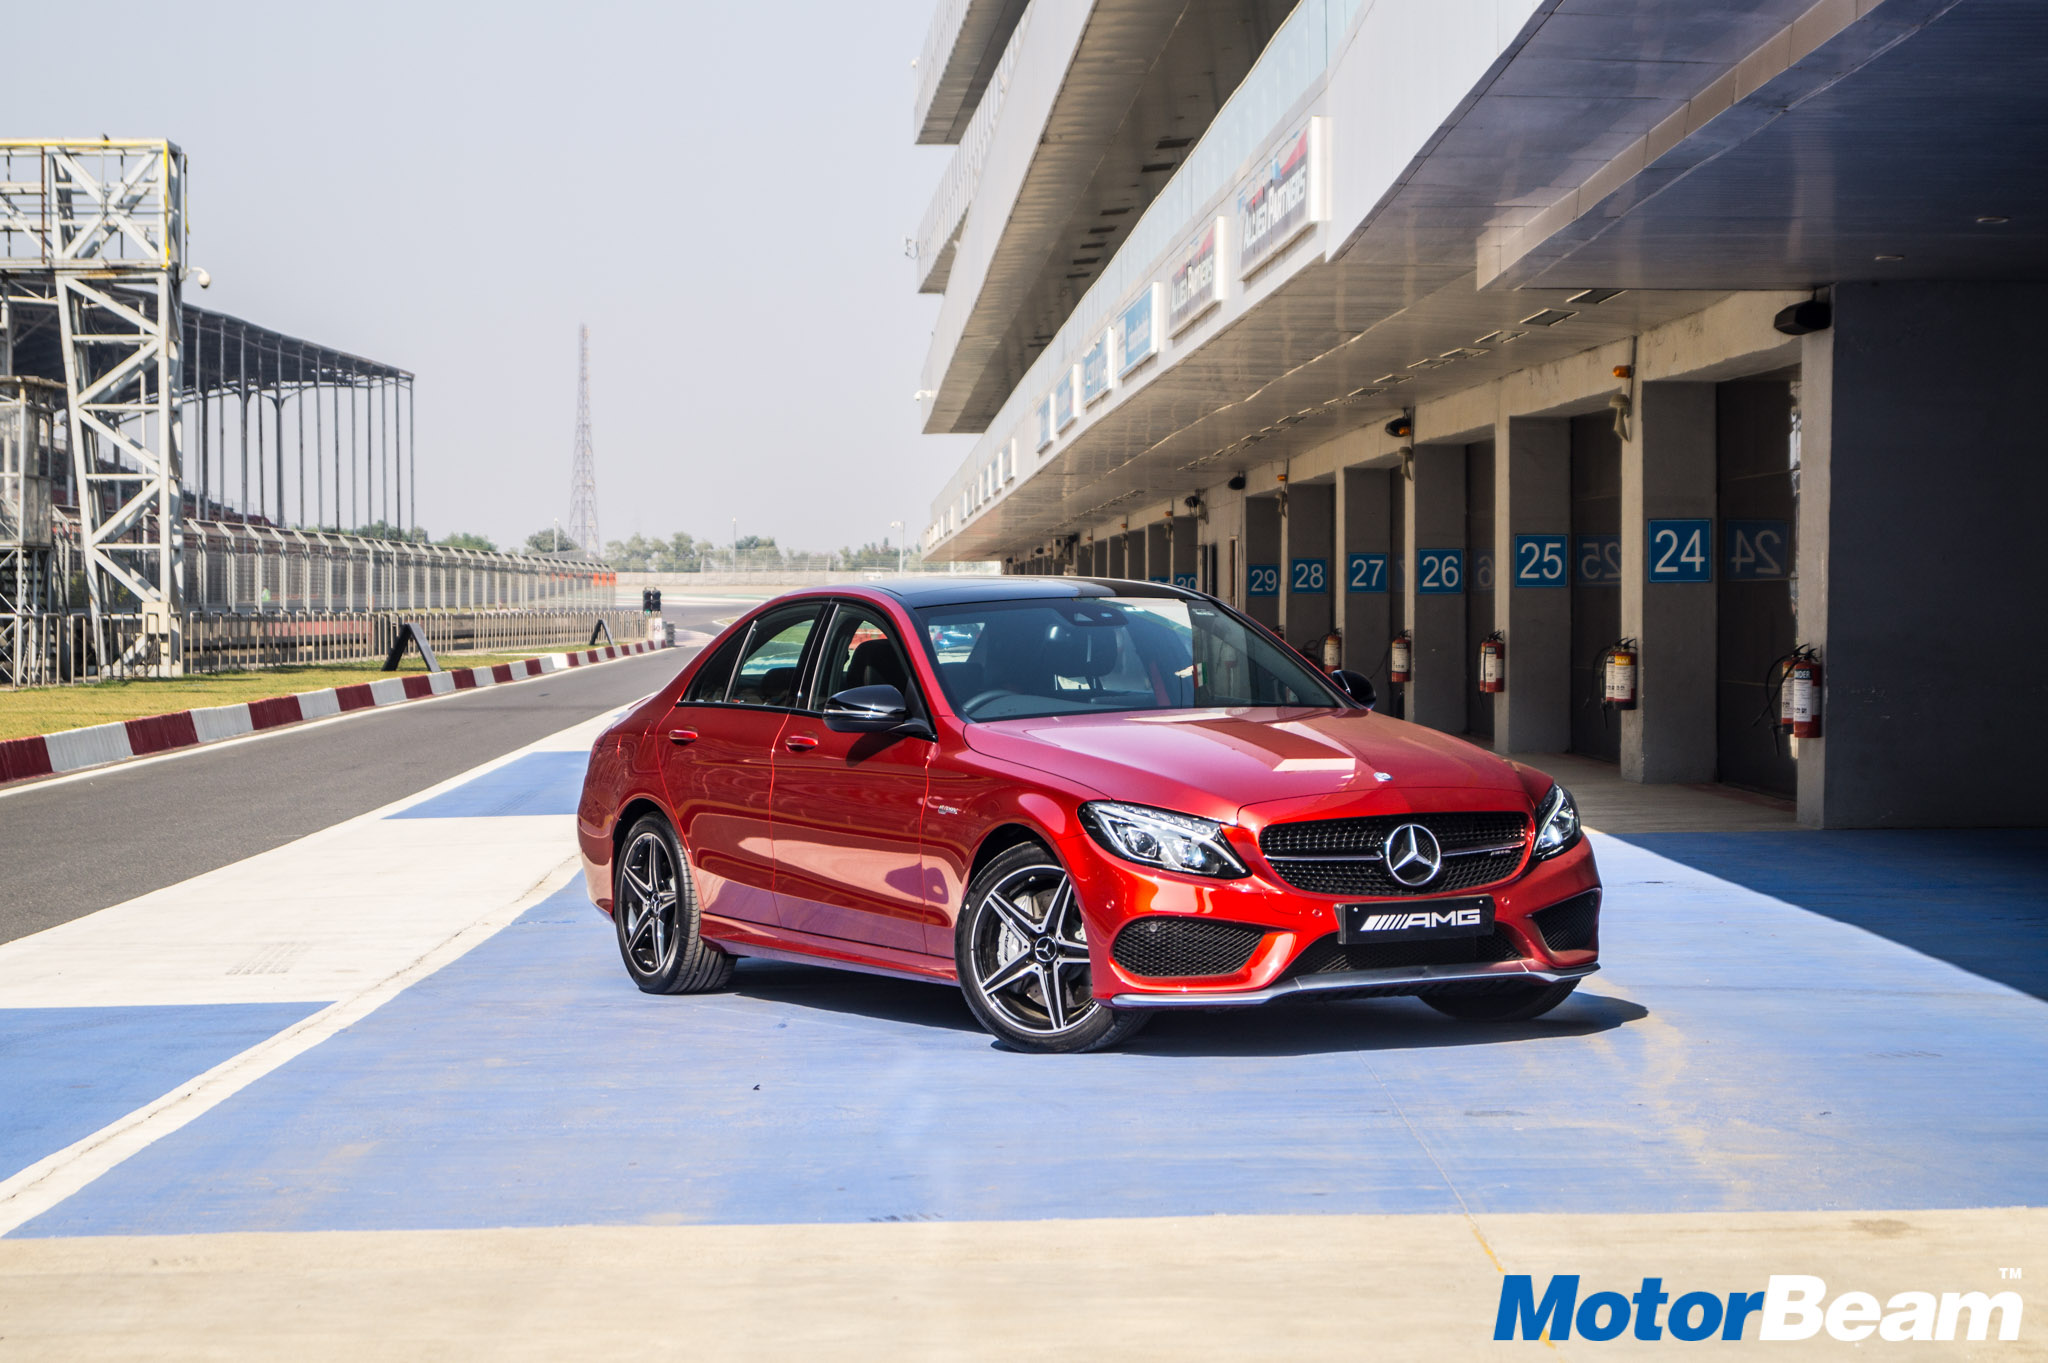 Mercedes C43 AMG Review